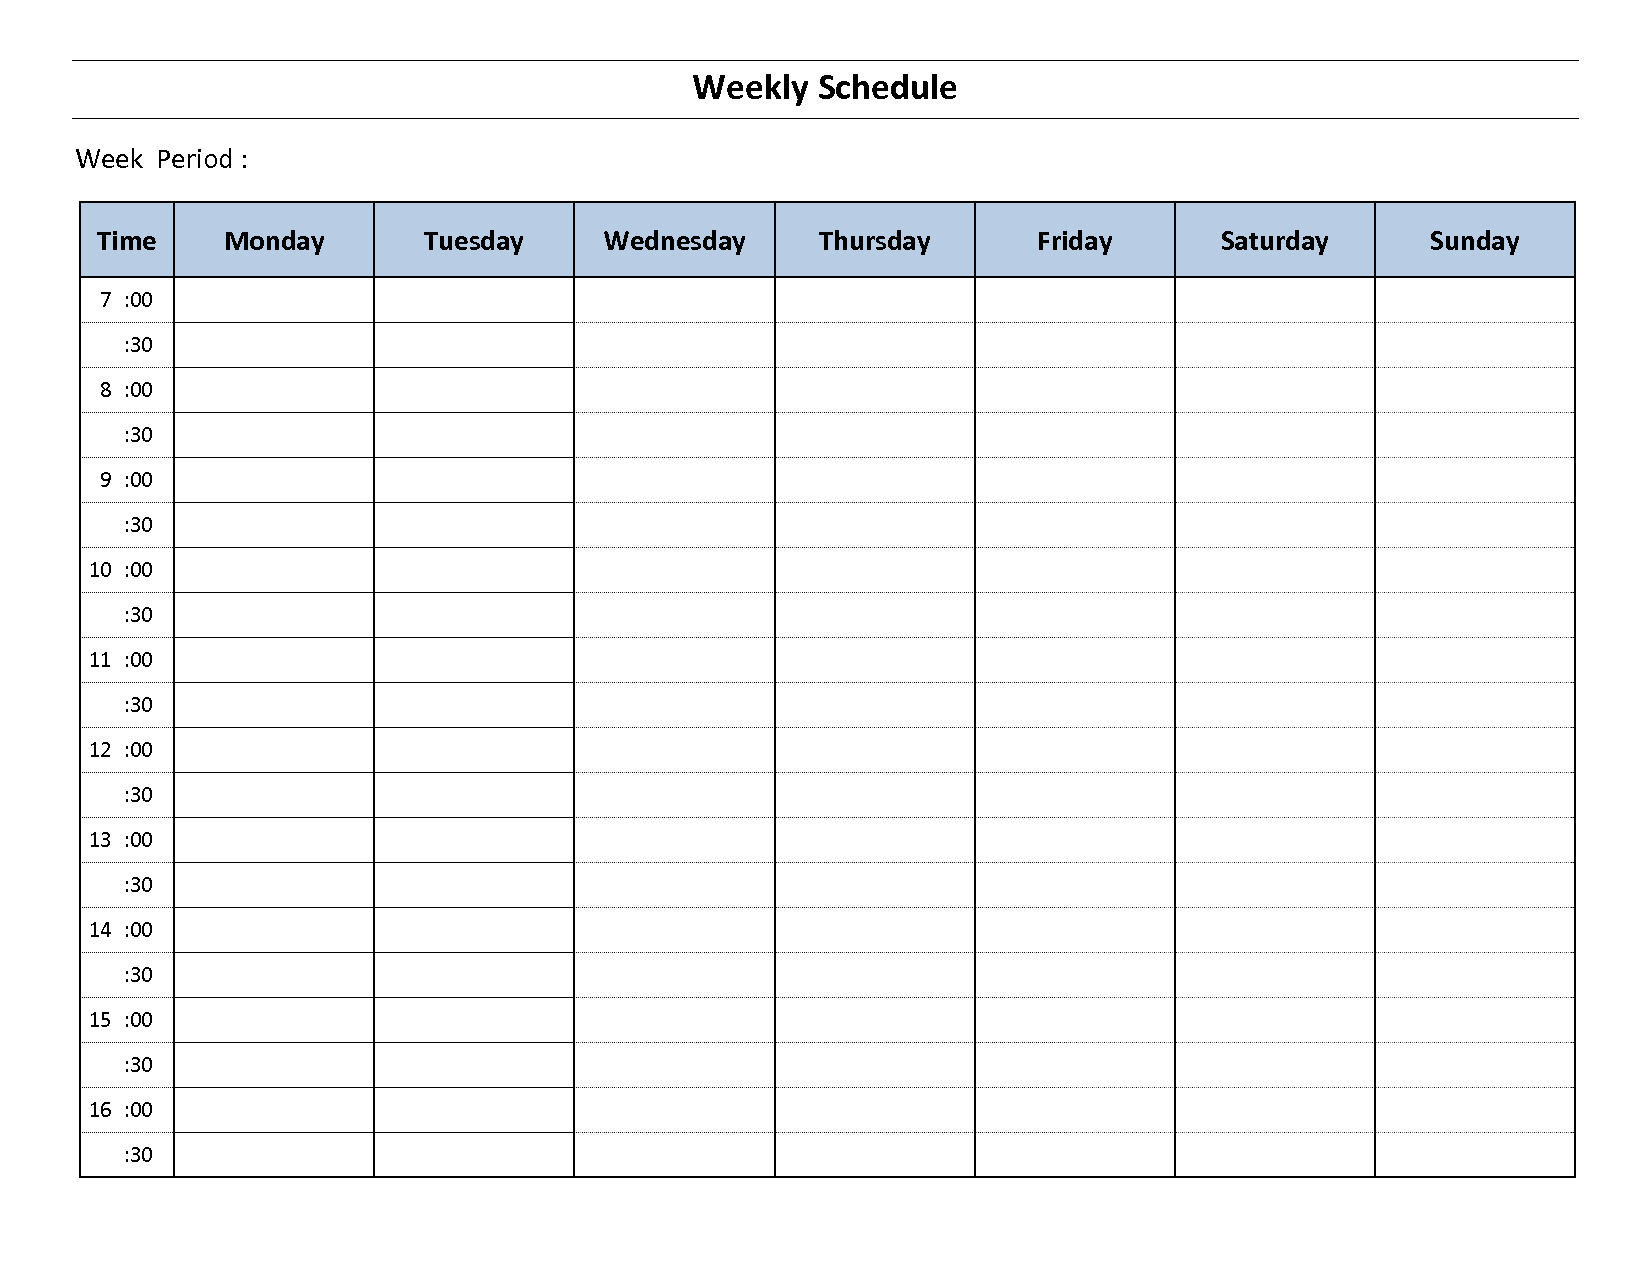 Free Weekly Schedule Templates For Word Monday Through Day Template with 2 Week Schedule Template Mon- Sunday